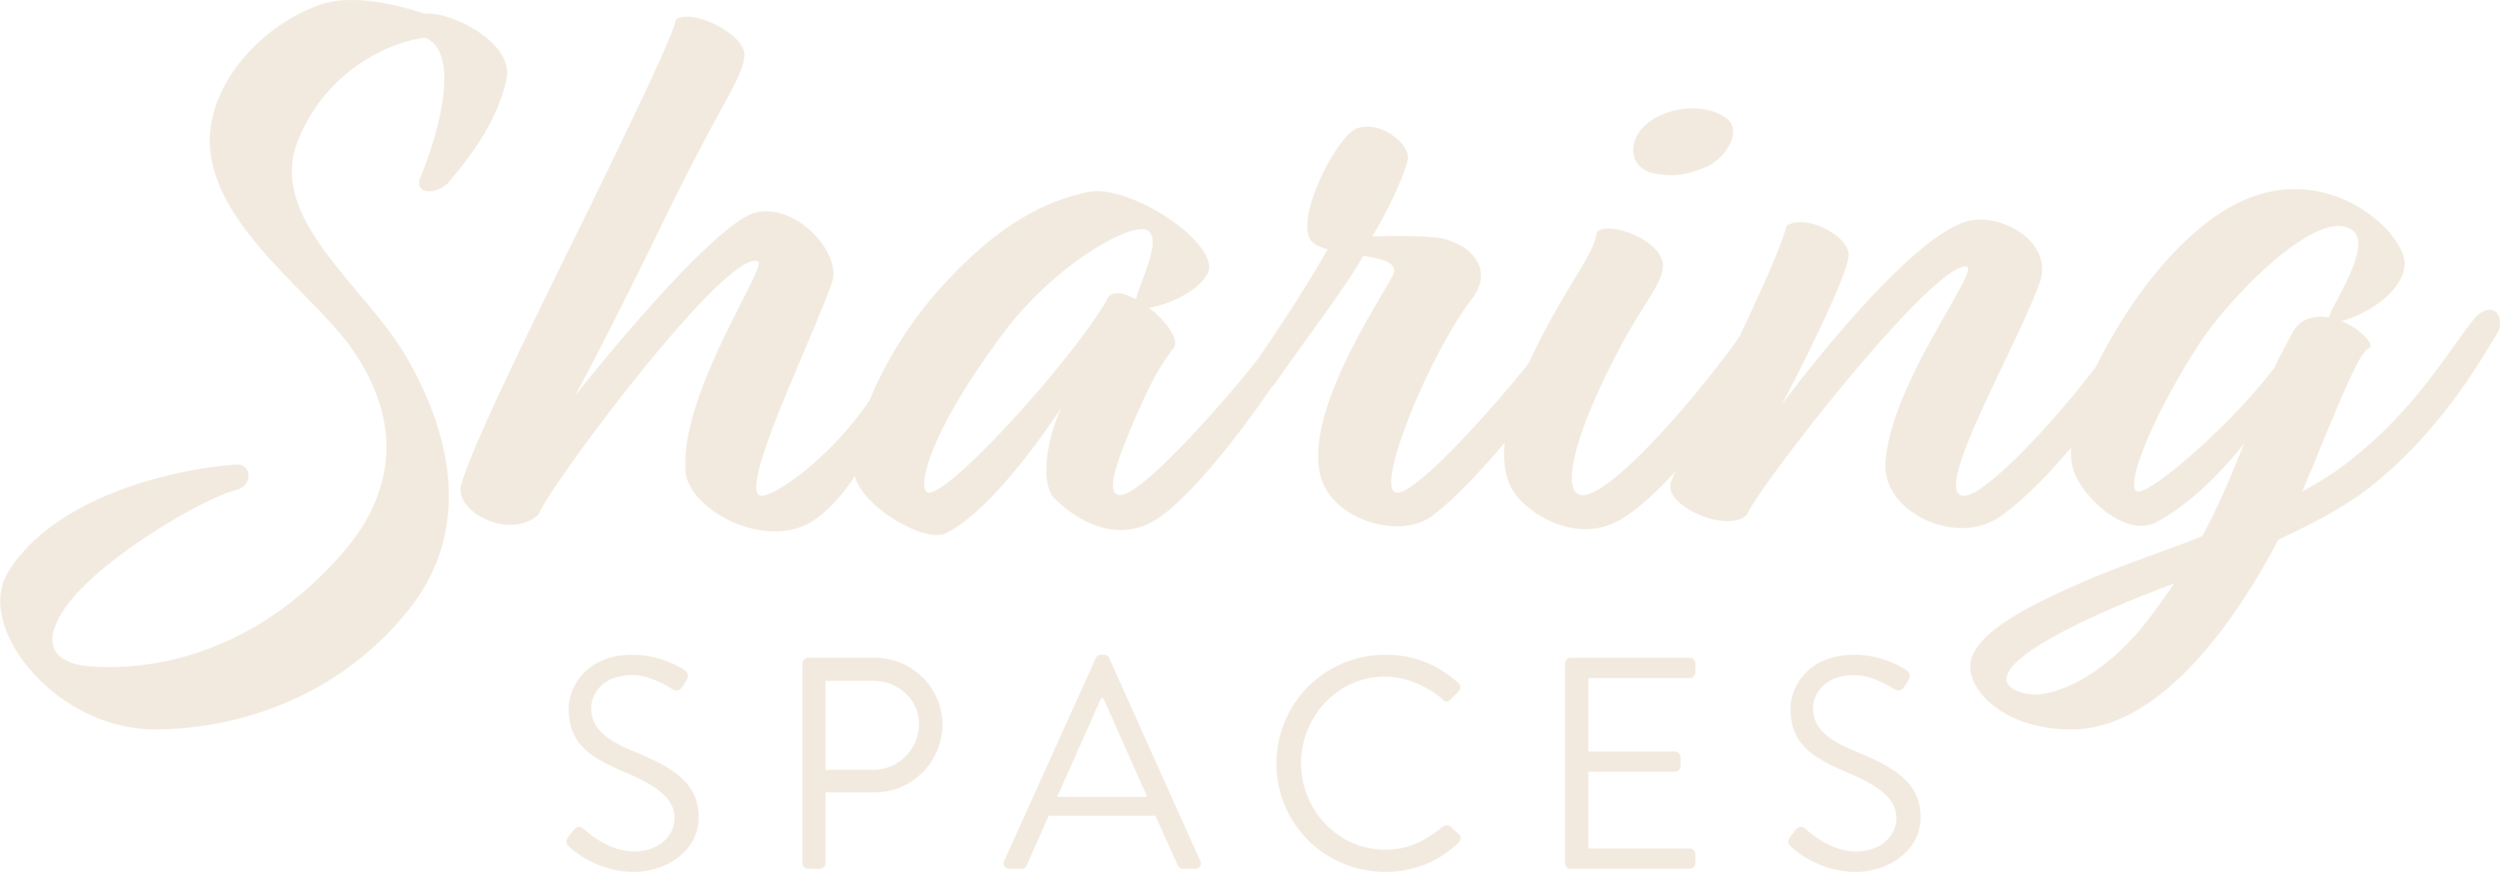 SS_Logo_Wordmark_OffWhite.png